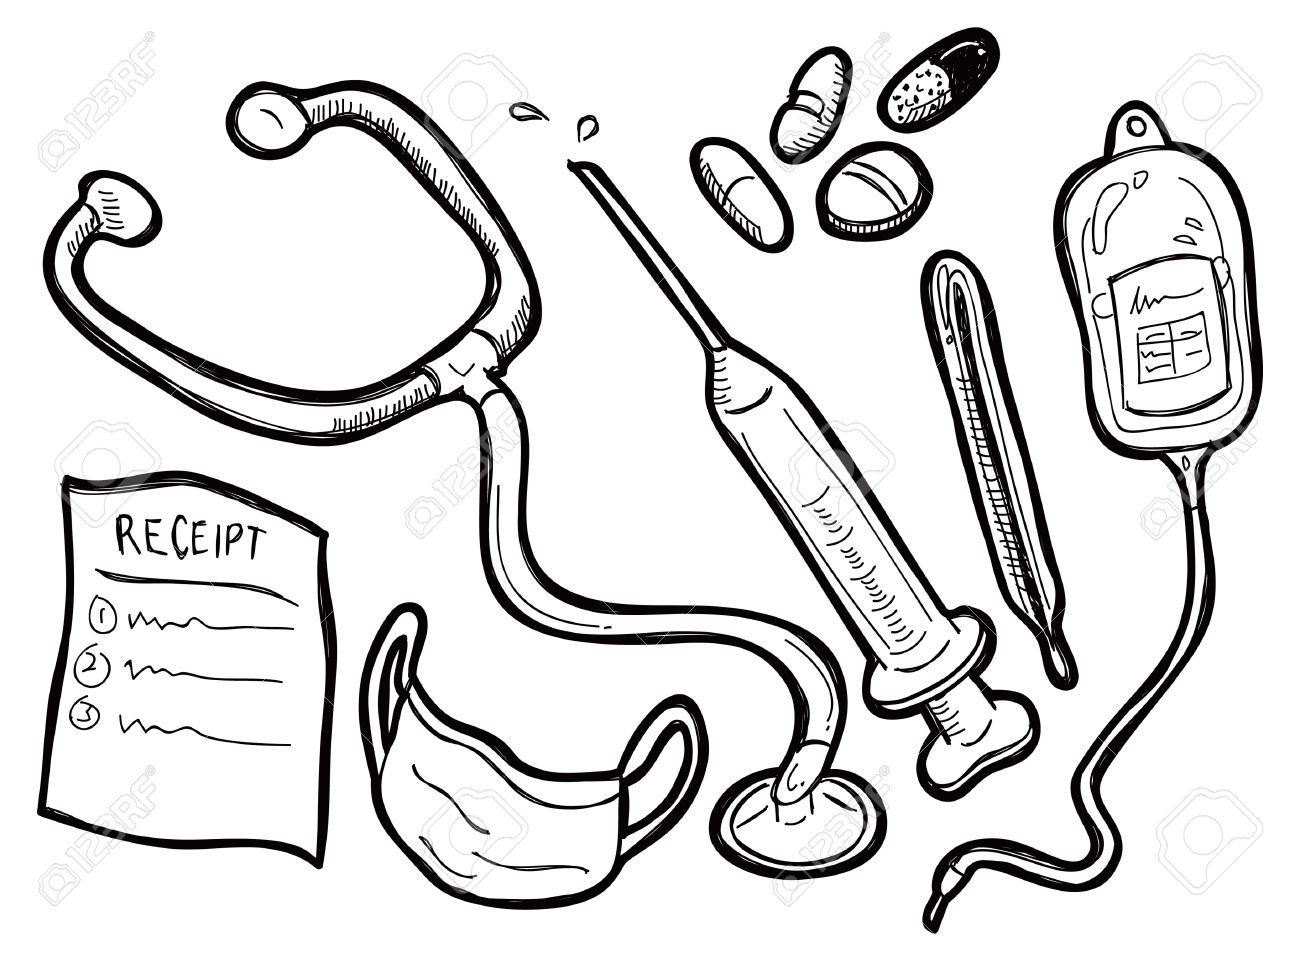 Medical Supplies Clipart